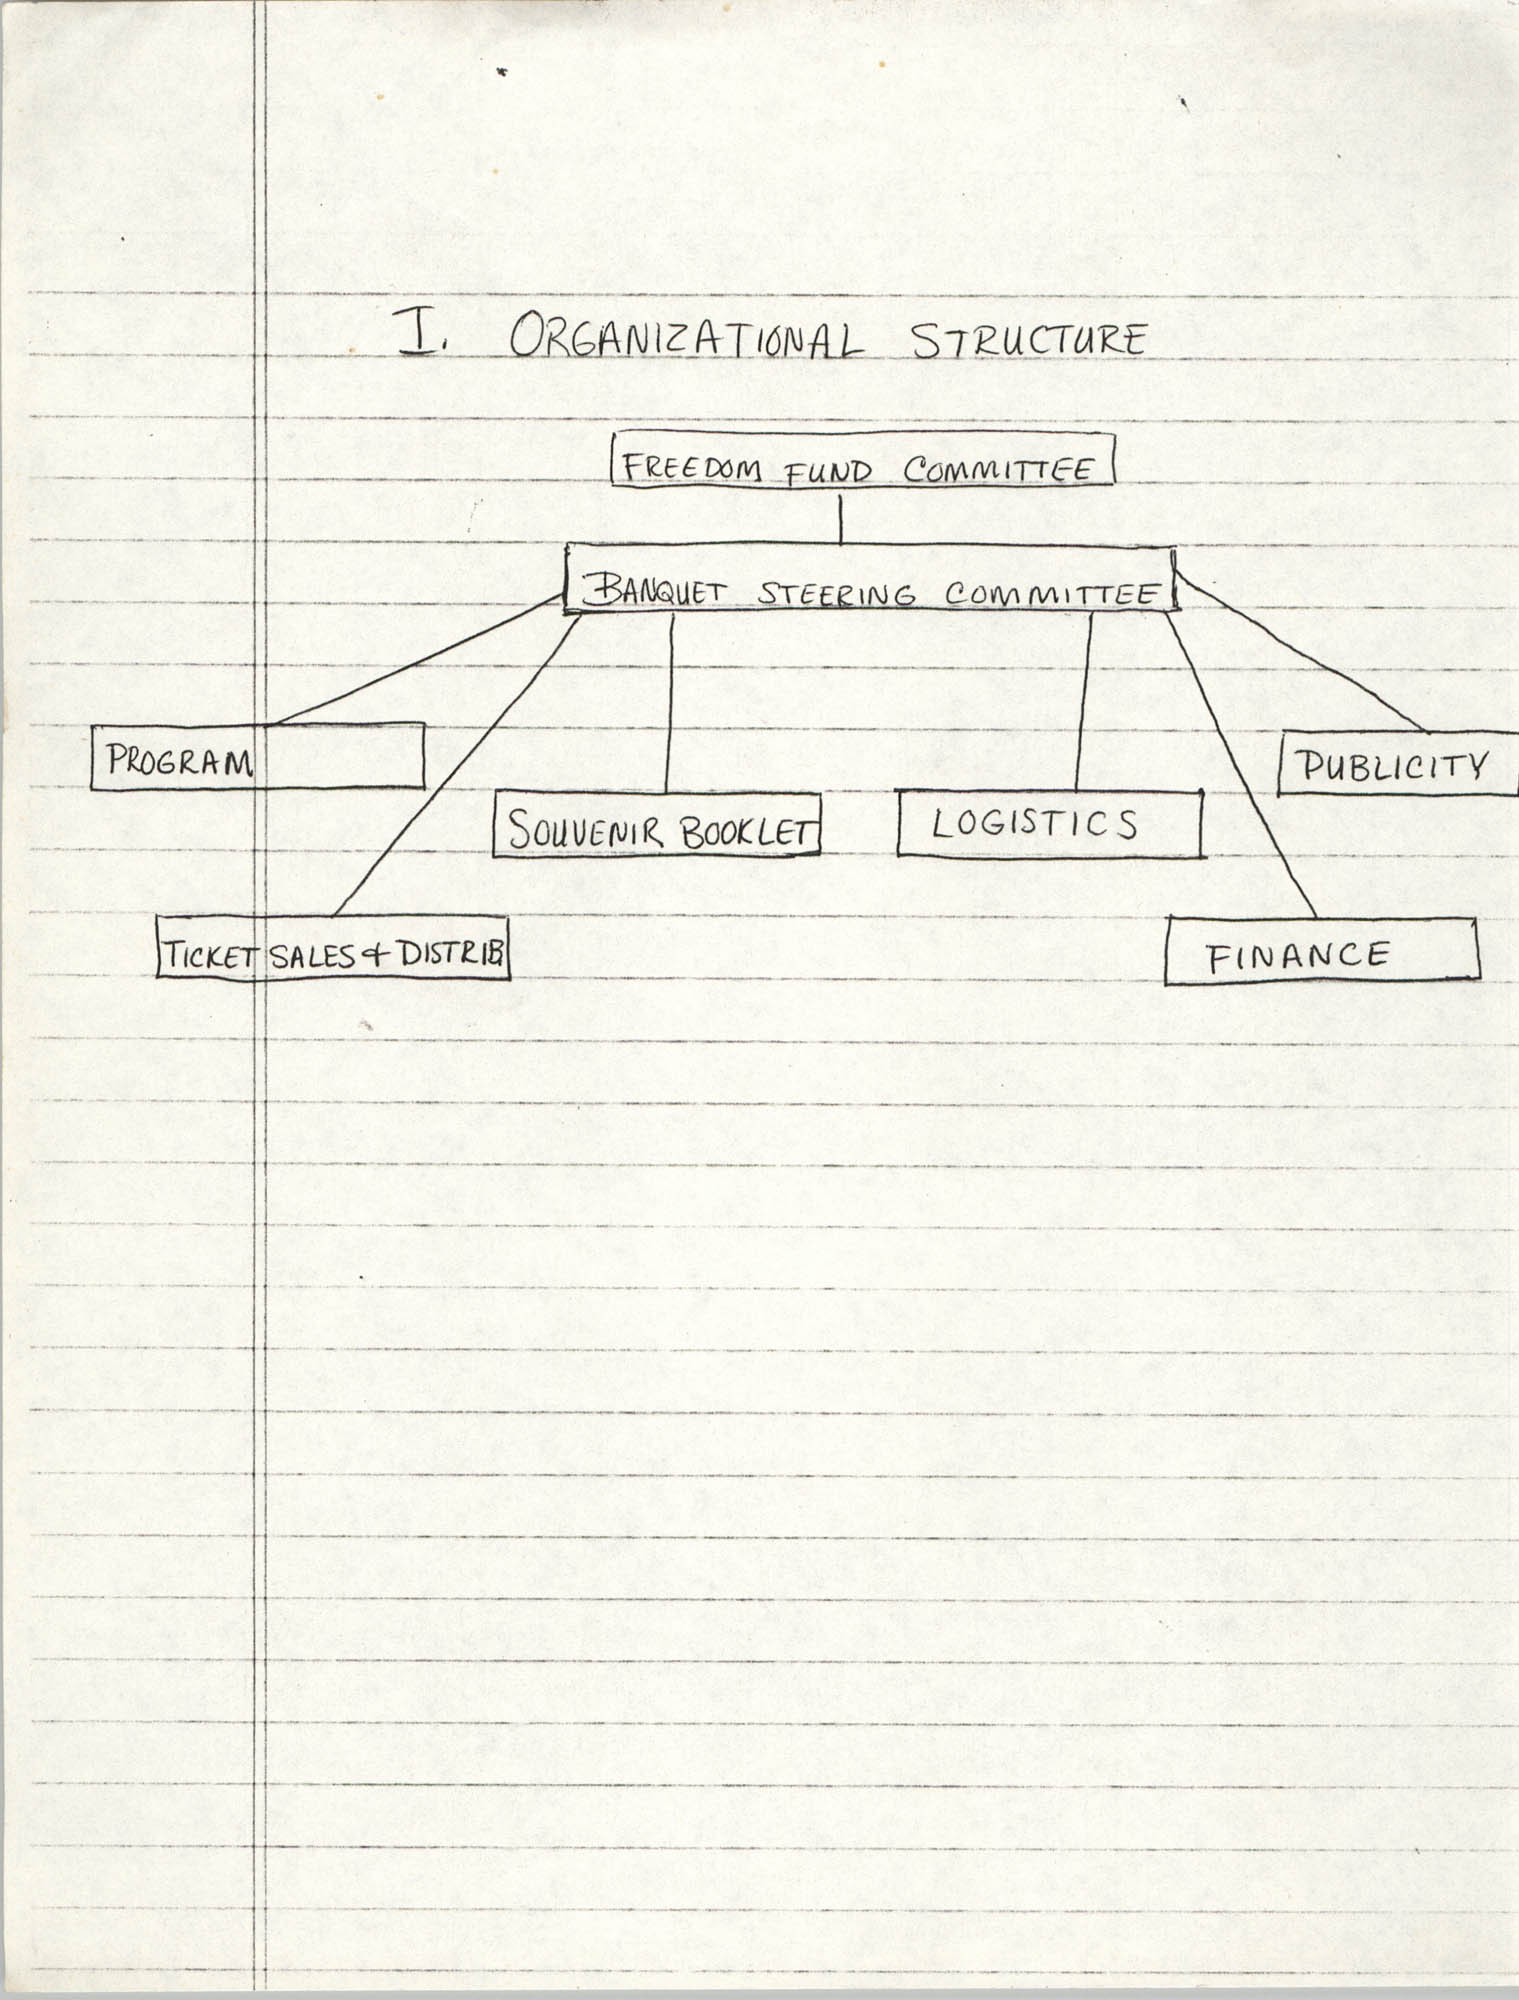 Organizational Structure, Freedom Fund Committee